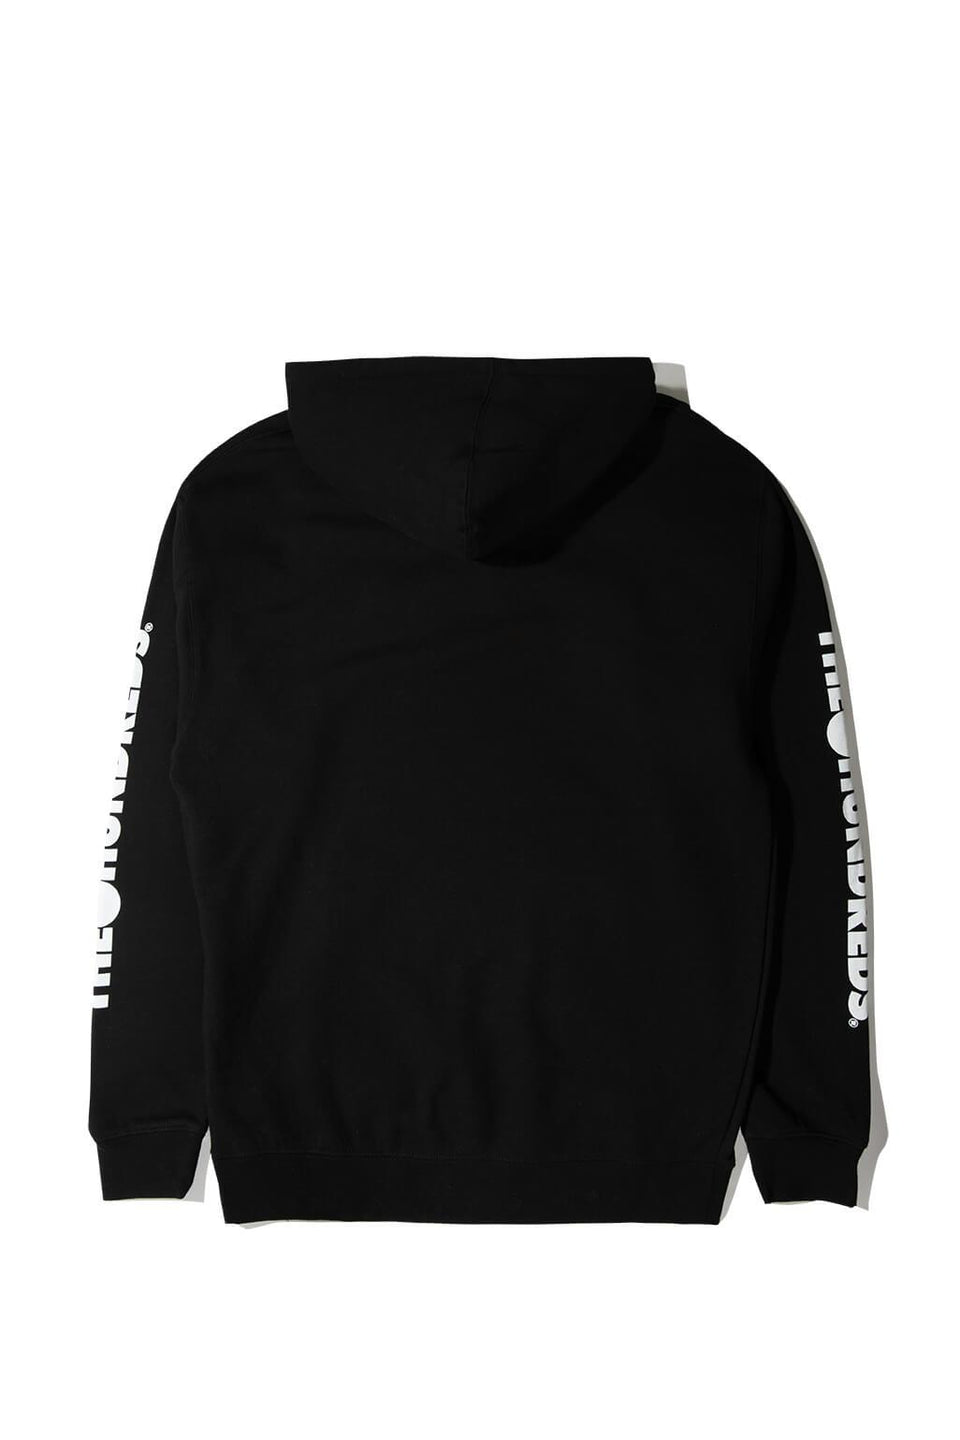 Forever Solid Bomb Crest Pullover Hoodie Black Back